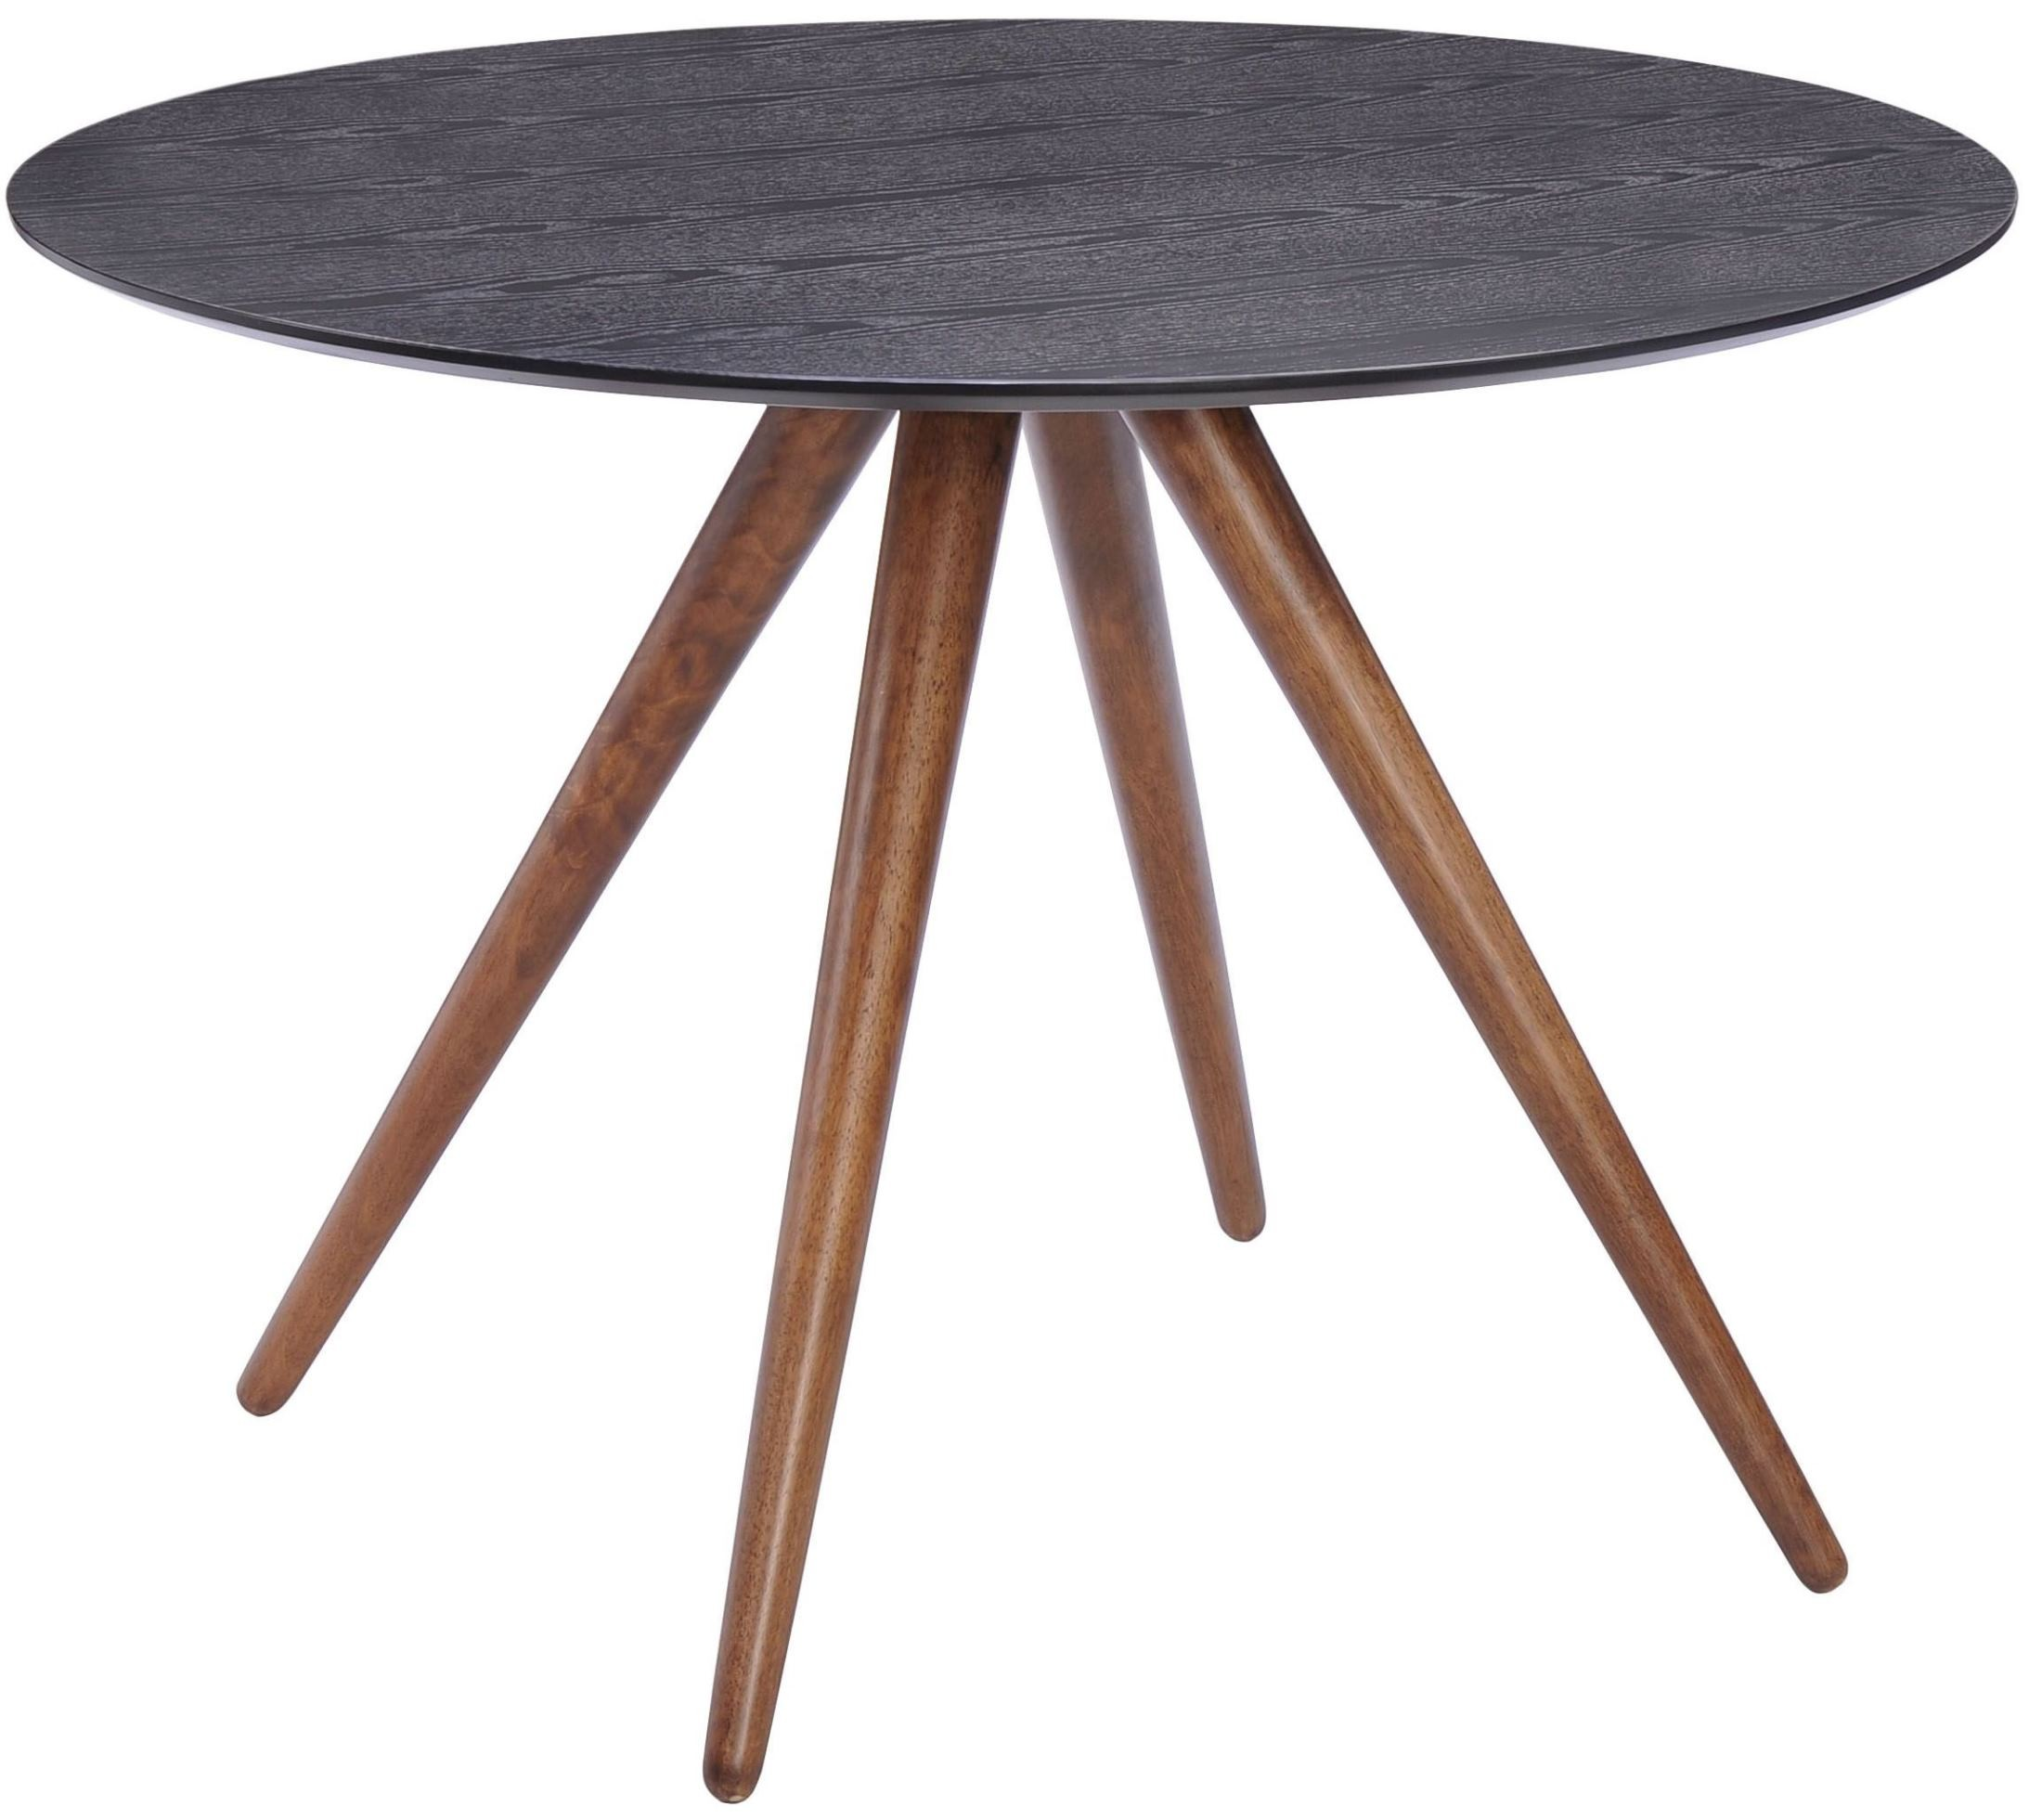 Grapeland Heights Walnut amp Black Round Dining Table from  : 100094 1 from colemanfurniture.com size 2200 x 1961 jpeg 333kB